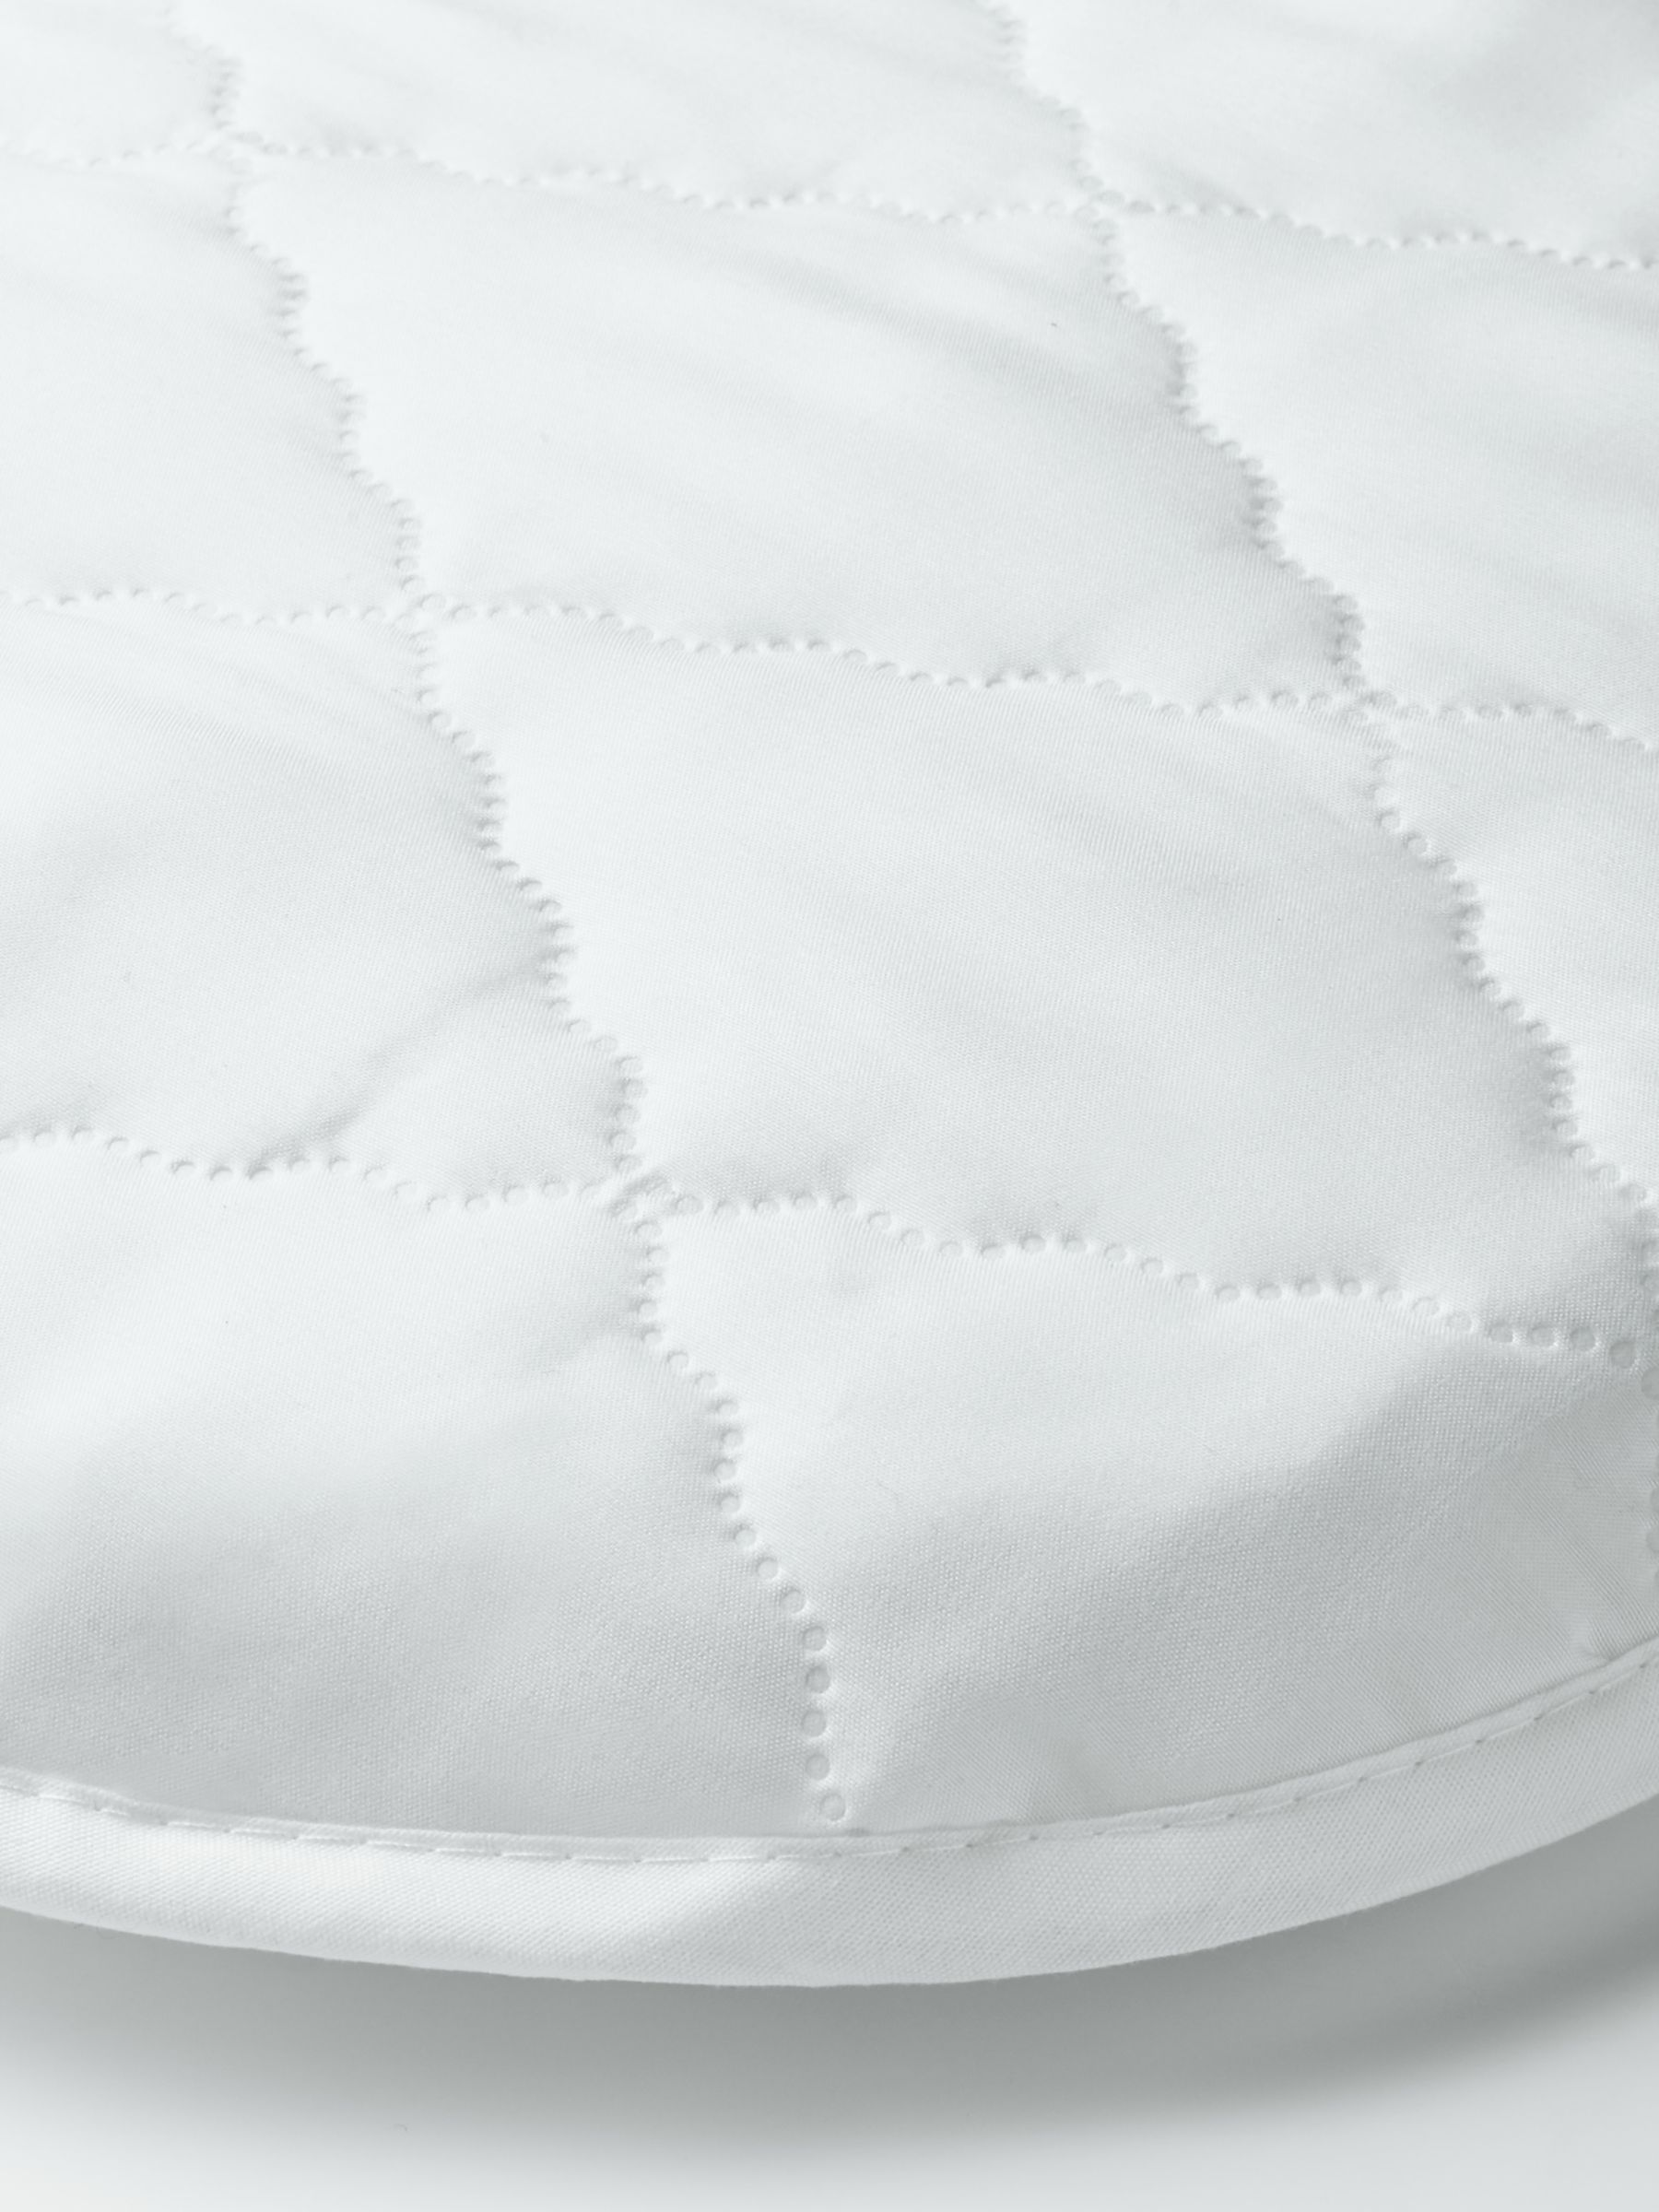 ANYDAY John Lewis & Partners Micro-Fresh Easy Care Waterproof Moses Basket Mattress Protector